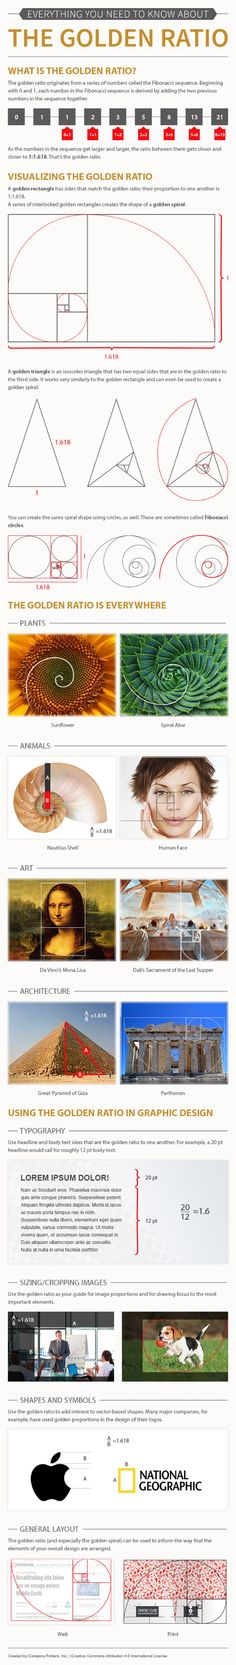 Image titled How to Apply the Golden Ratio in Photography and Design